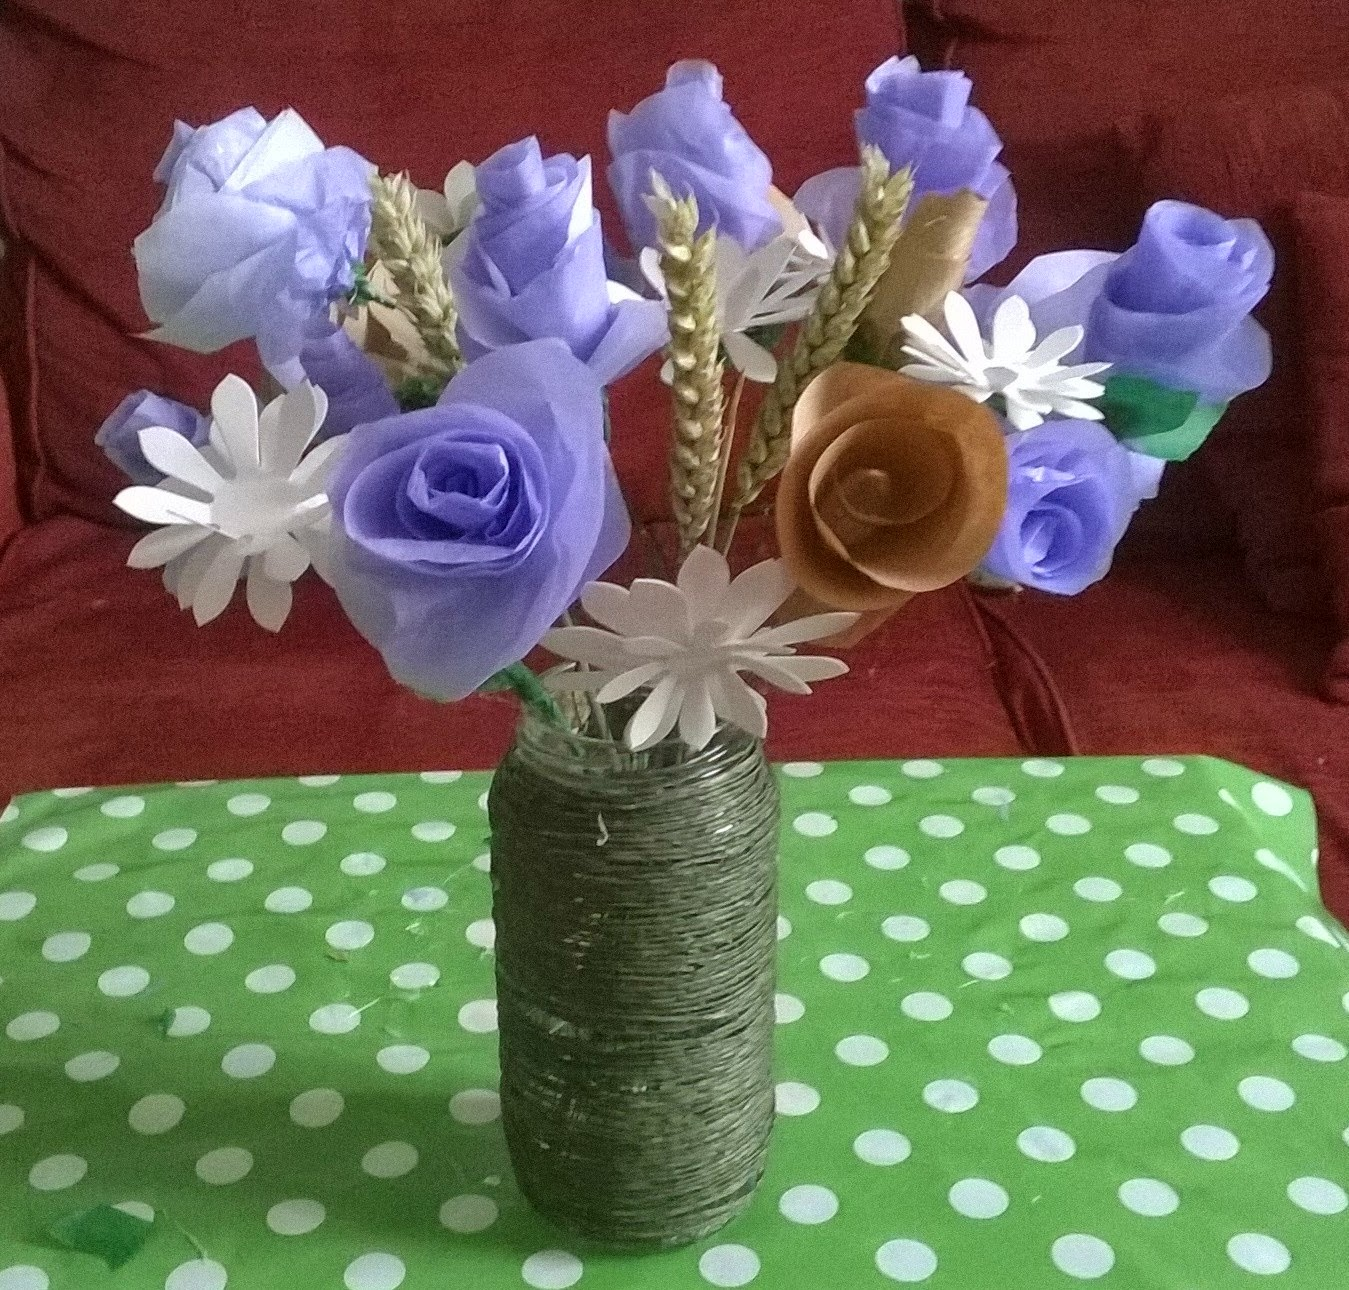 Big blue bed a country paper flower bouquet tutorial i am fortunate indeed to be one of only three bloggers to participate in the country baskets paper bouquet competition lucky lucky me got to shop in their izmirmasajfo